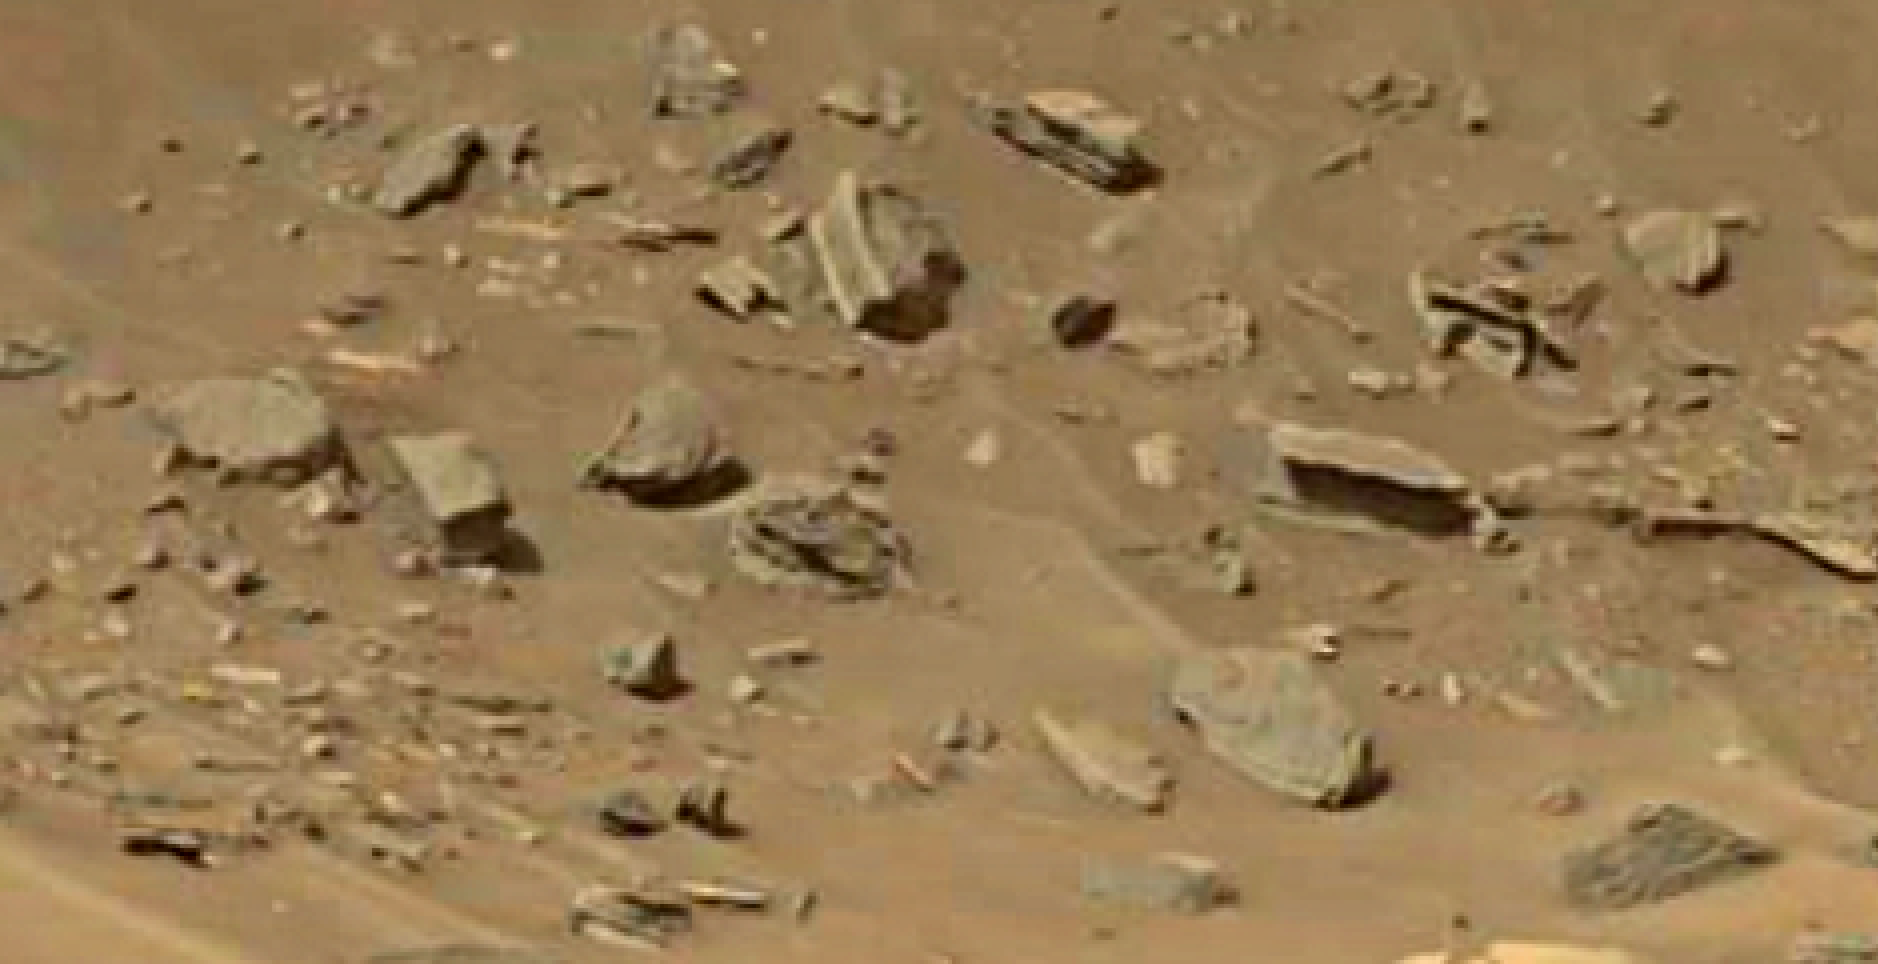 mars-sol-1451-anomaly-artifacts-2-was-life-on-mars